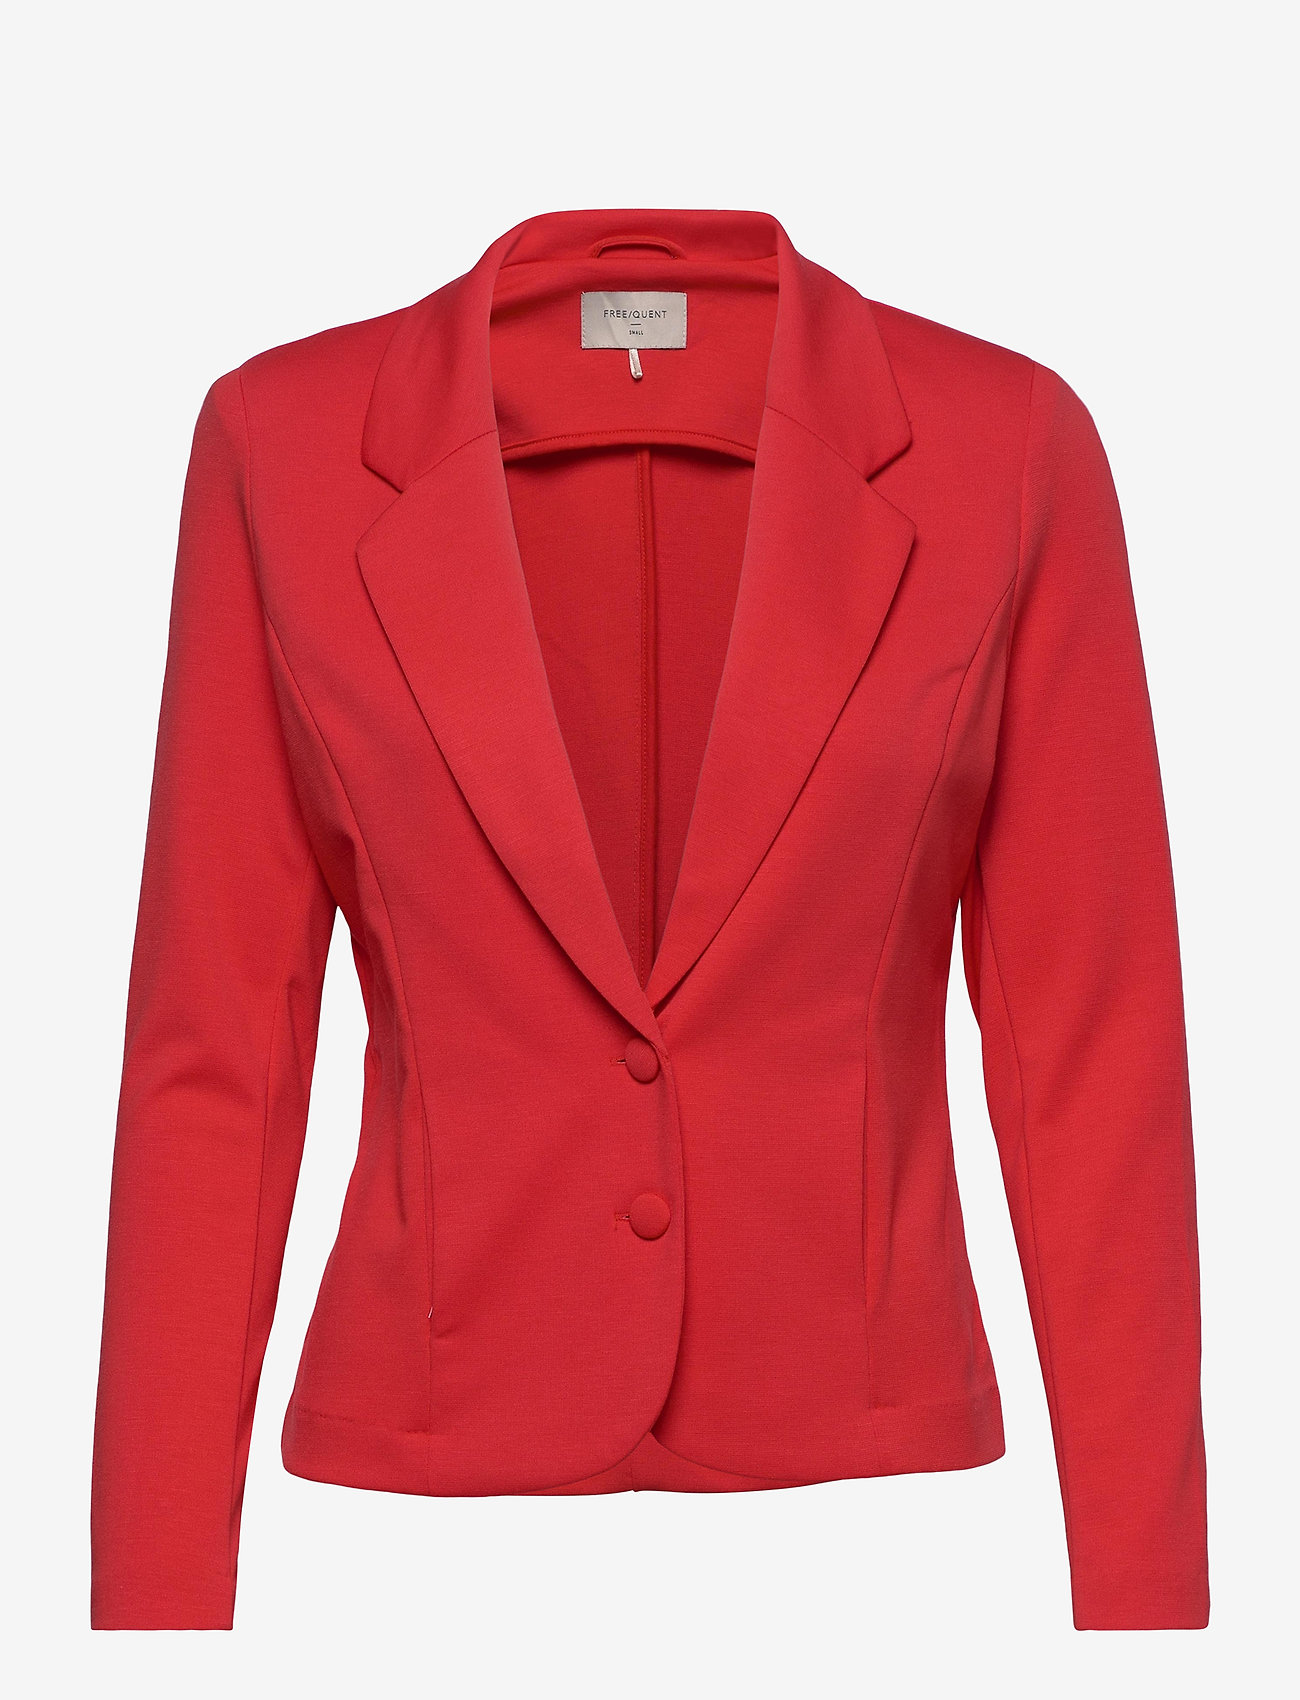 FREE/QUENT - FQNANNI-JA - casual blazers - poppy red - 0